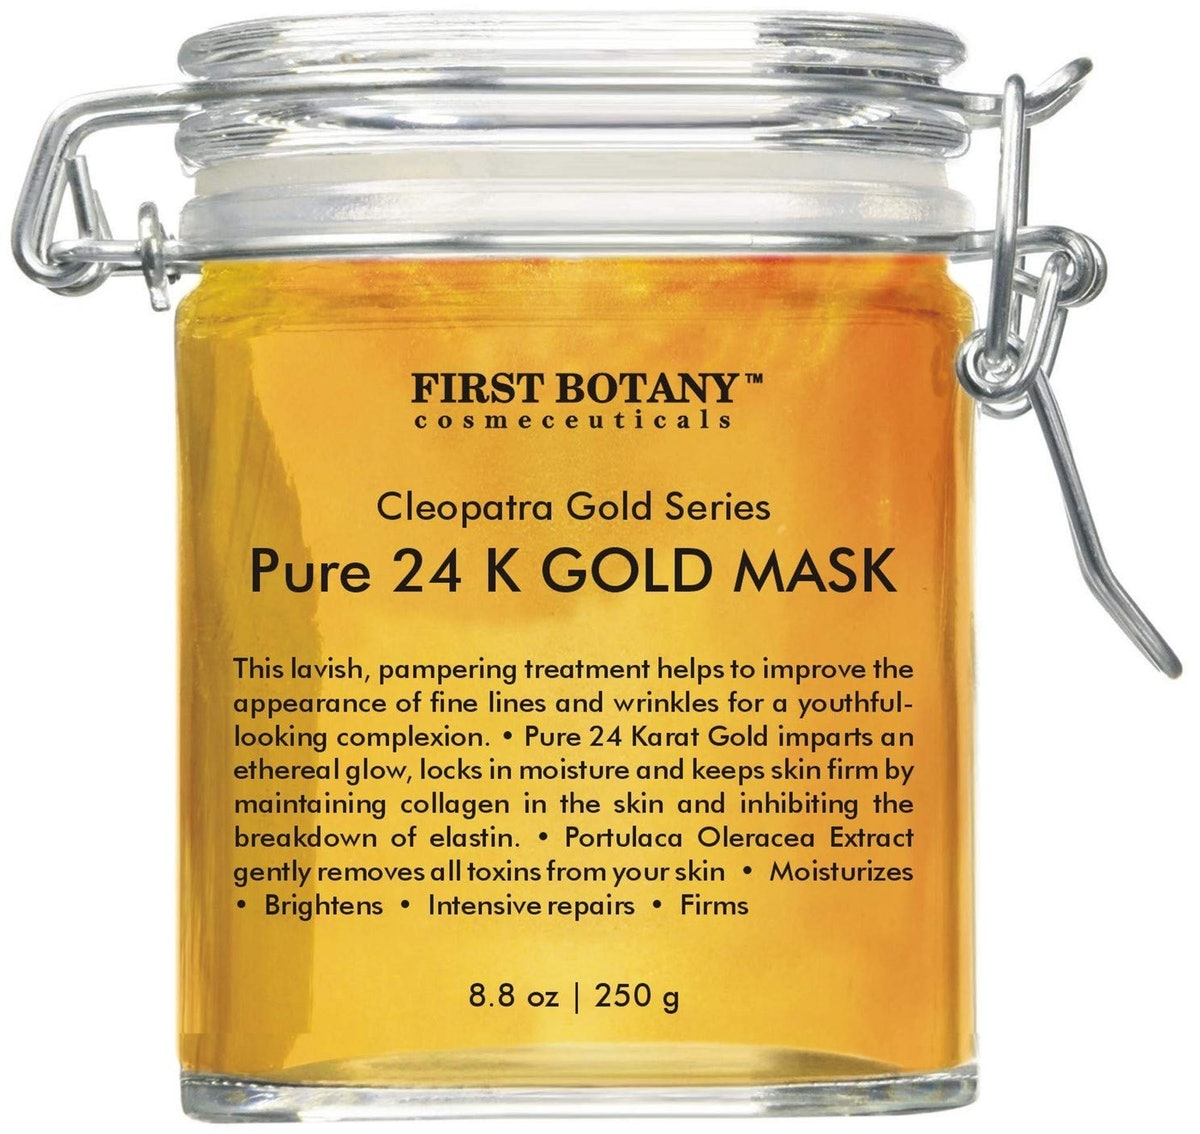 First Botany Cosmeceuticals 24K Gold Facial Mask